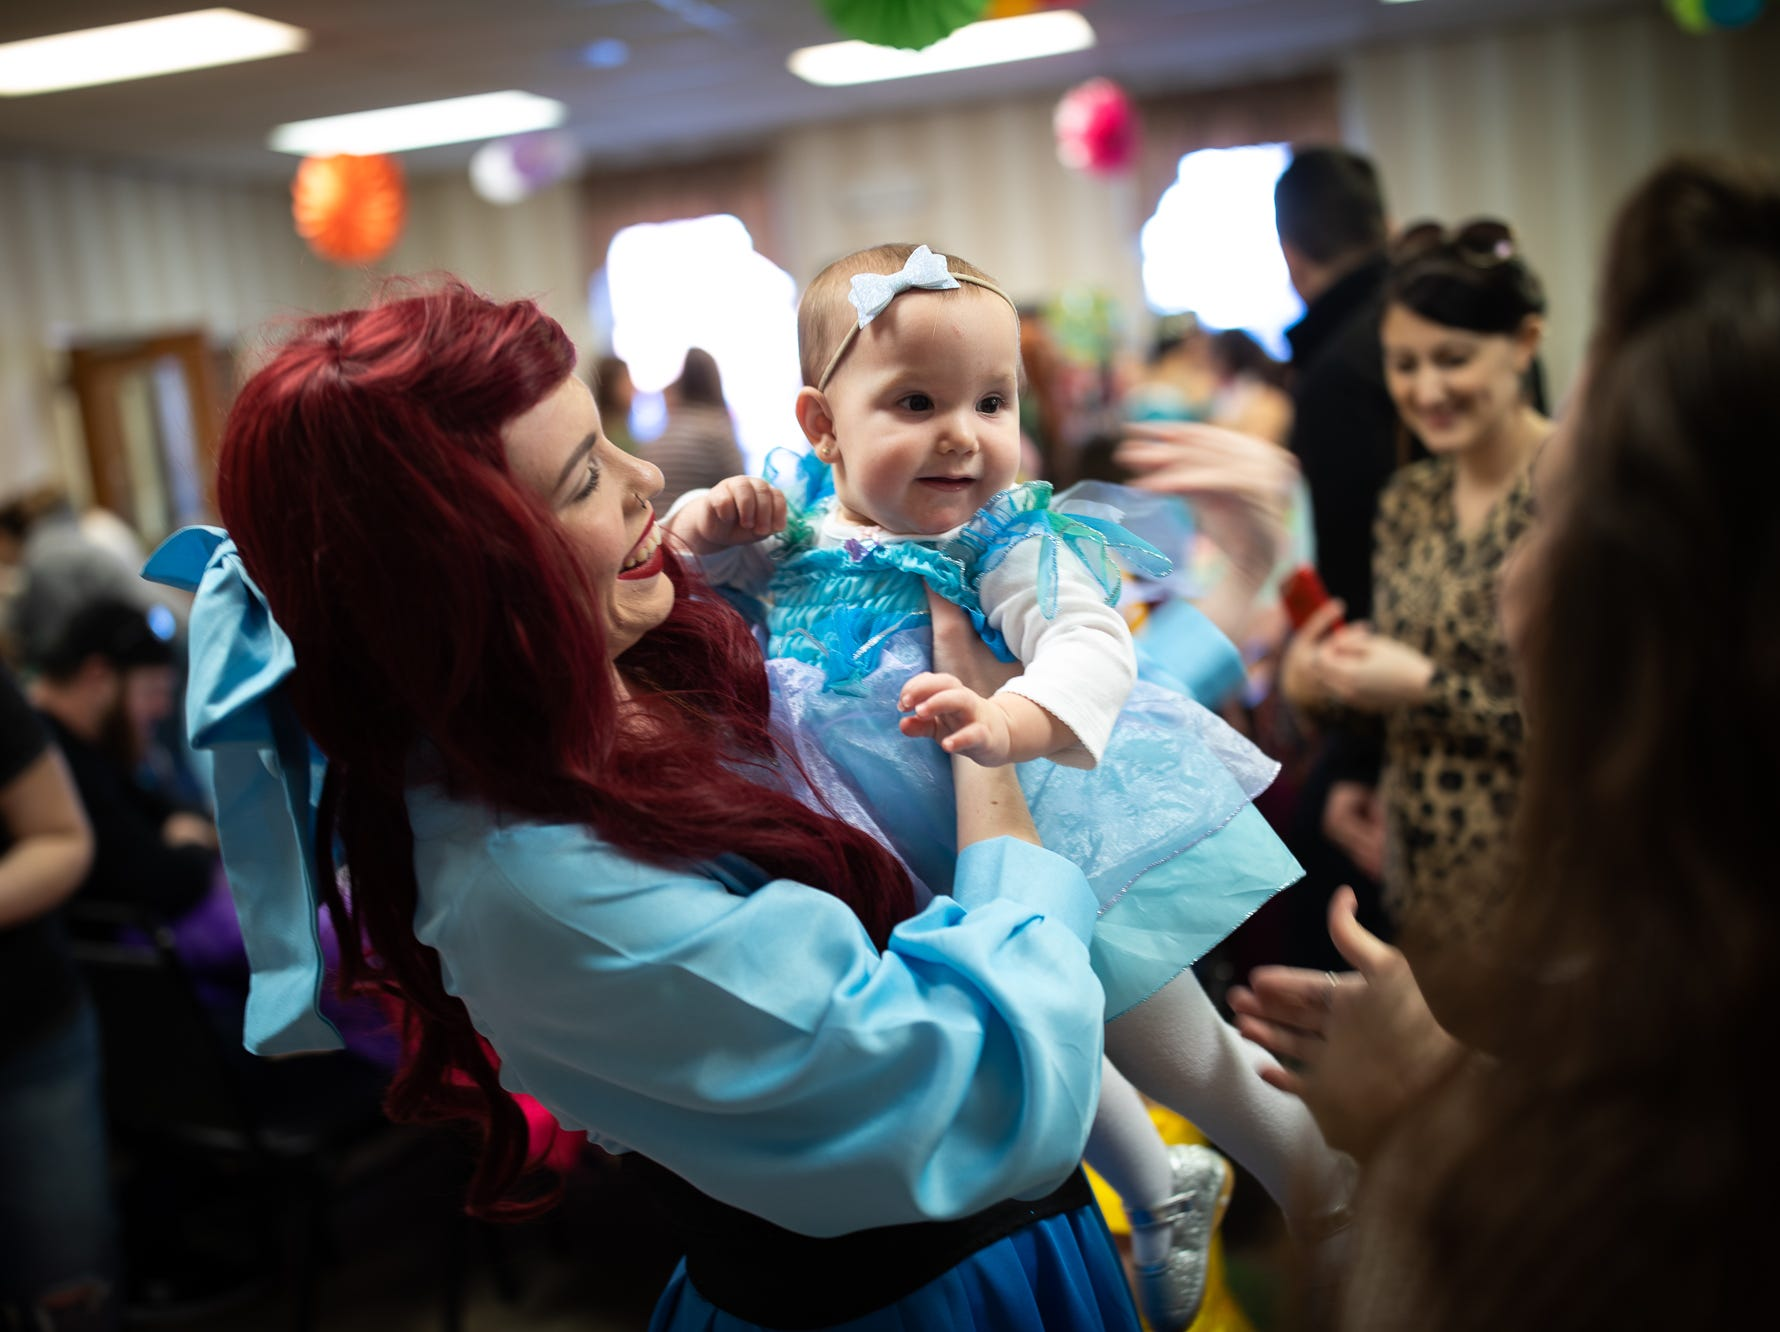 Princess Ariel picks up Cheyenne, 16 months, during a princess teatime hosted by the Black Rose Rollers, Saturday, Feb. 9, 2019, at the Hanover YWCA.